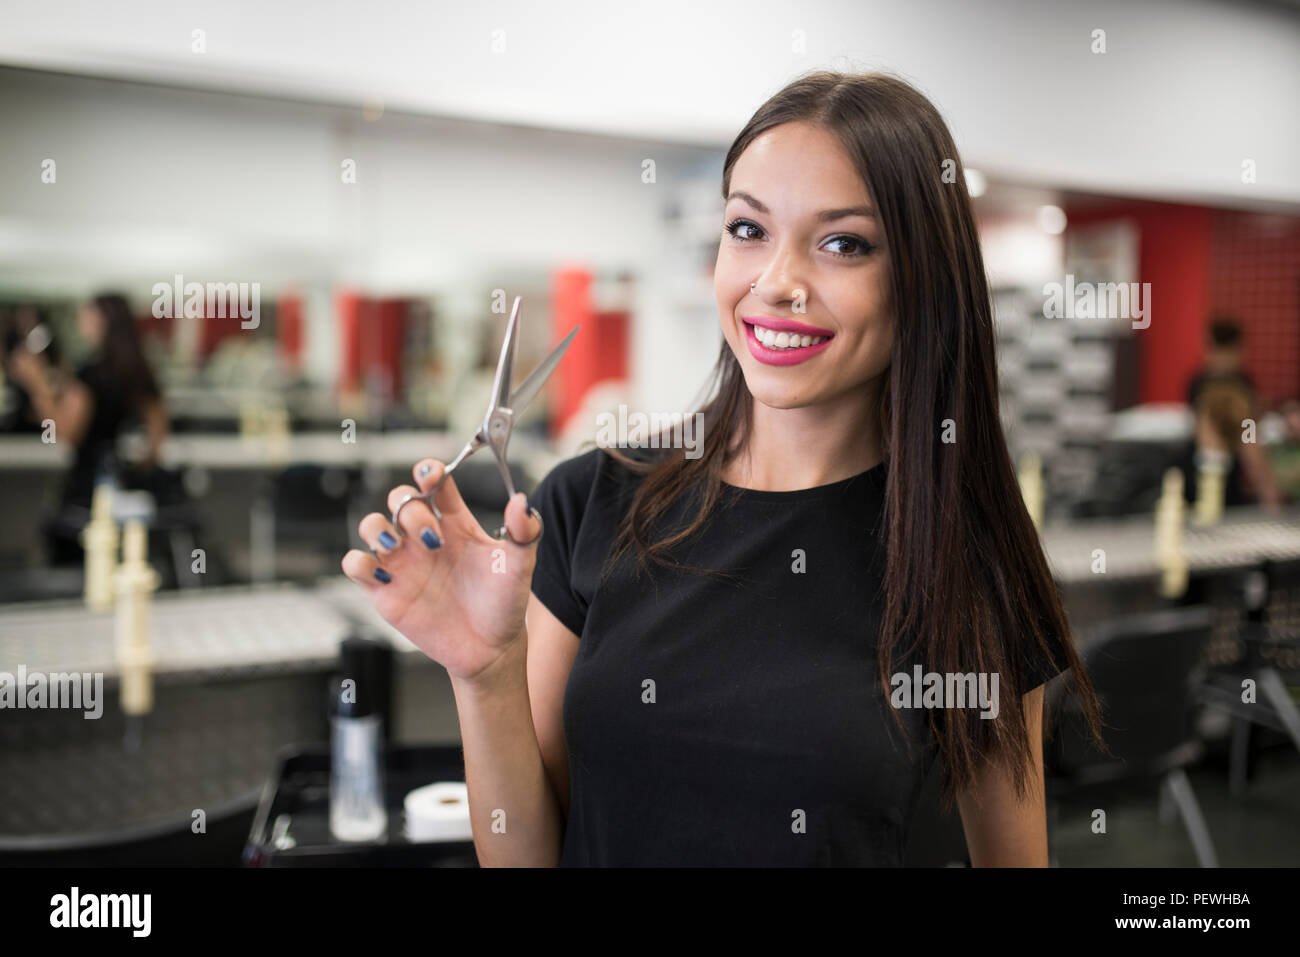 Hairdressers with scissors posing in salon smiling looking at camera - Stock Image